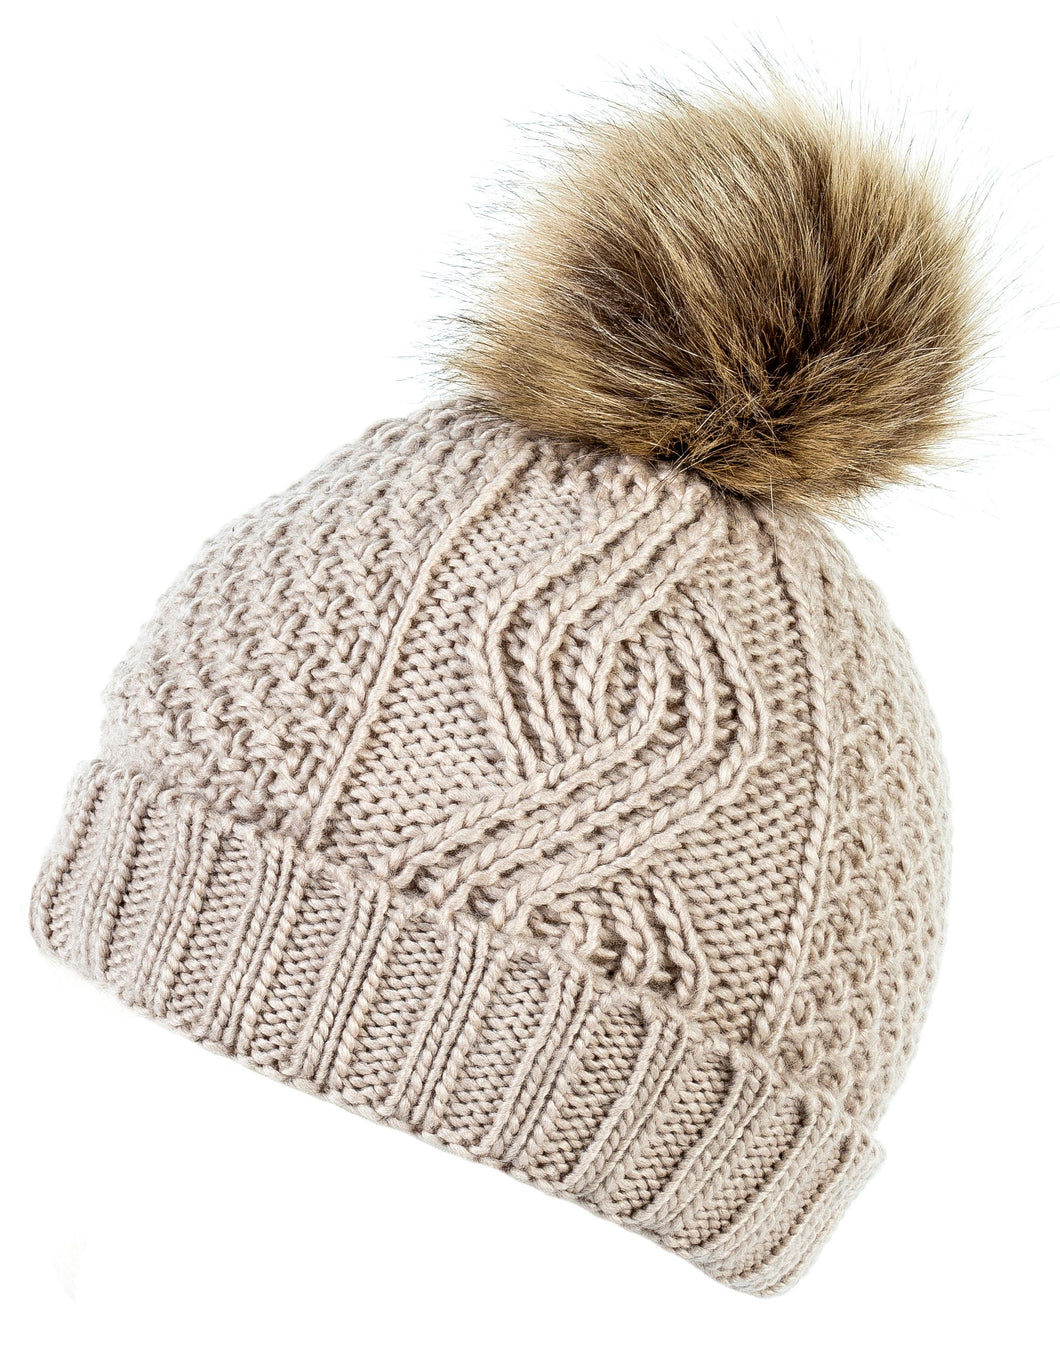 Darby Pom Oatmeal Knitted Hat